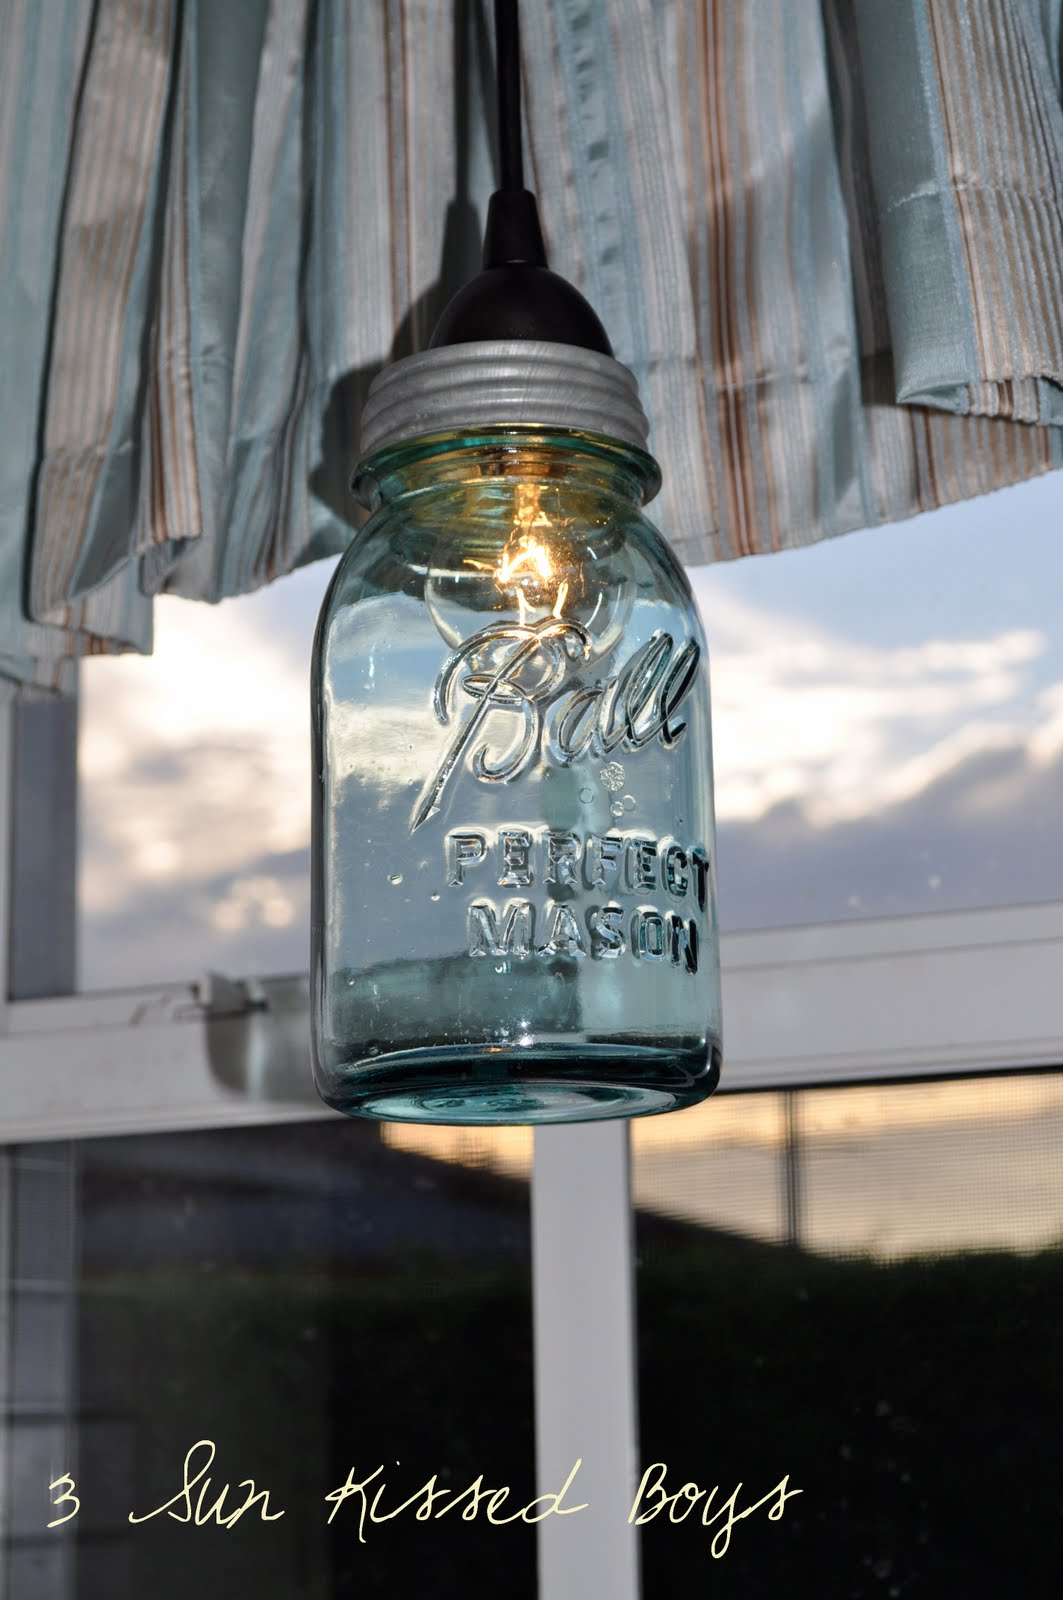 Remodelaholic 14 great diy pendant lights and link party blue tinted mason jar pendant light diy tutorial 3 sunkissed boys featured on remodelaholic aloadofball Image collections